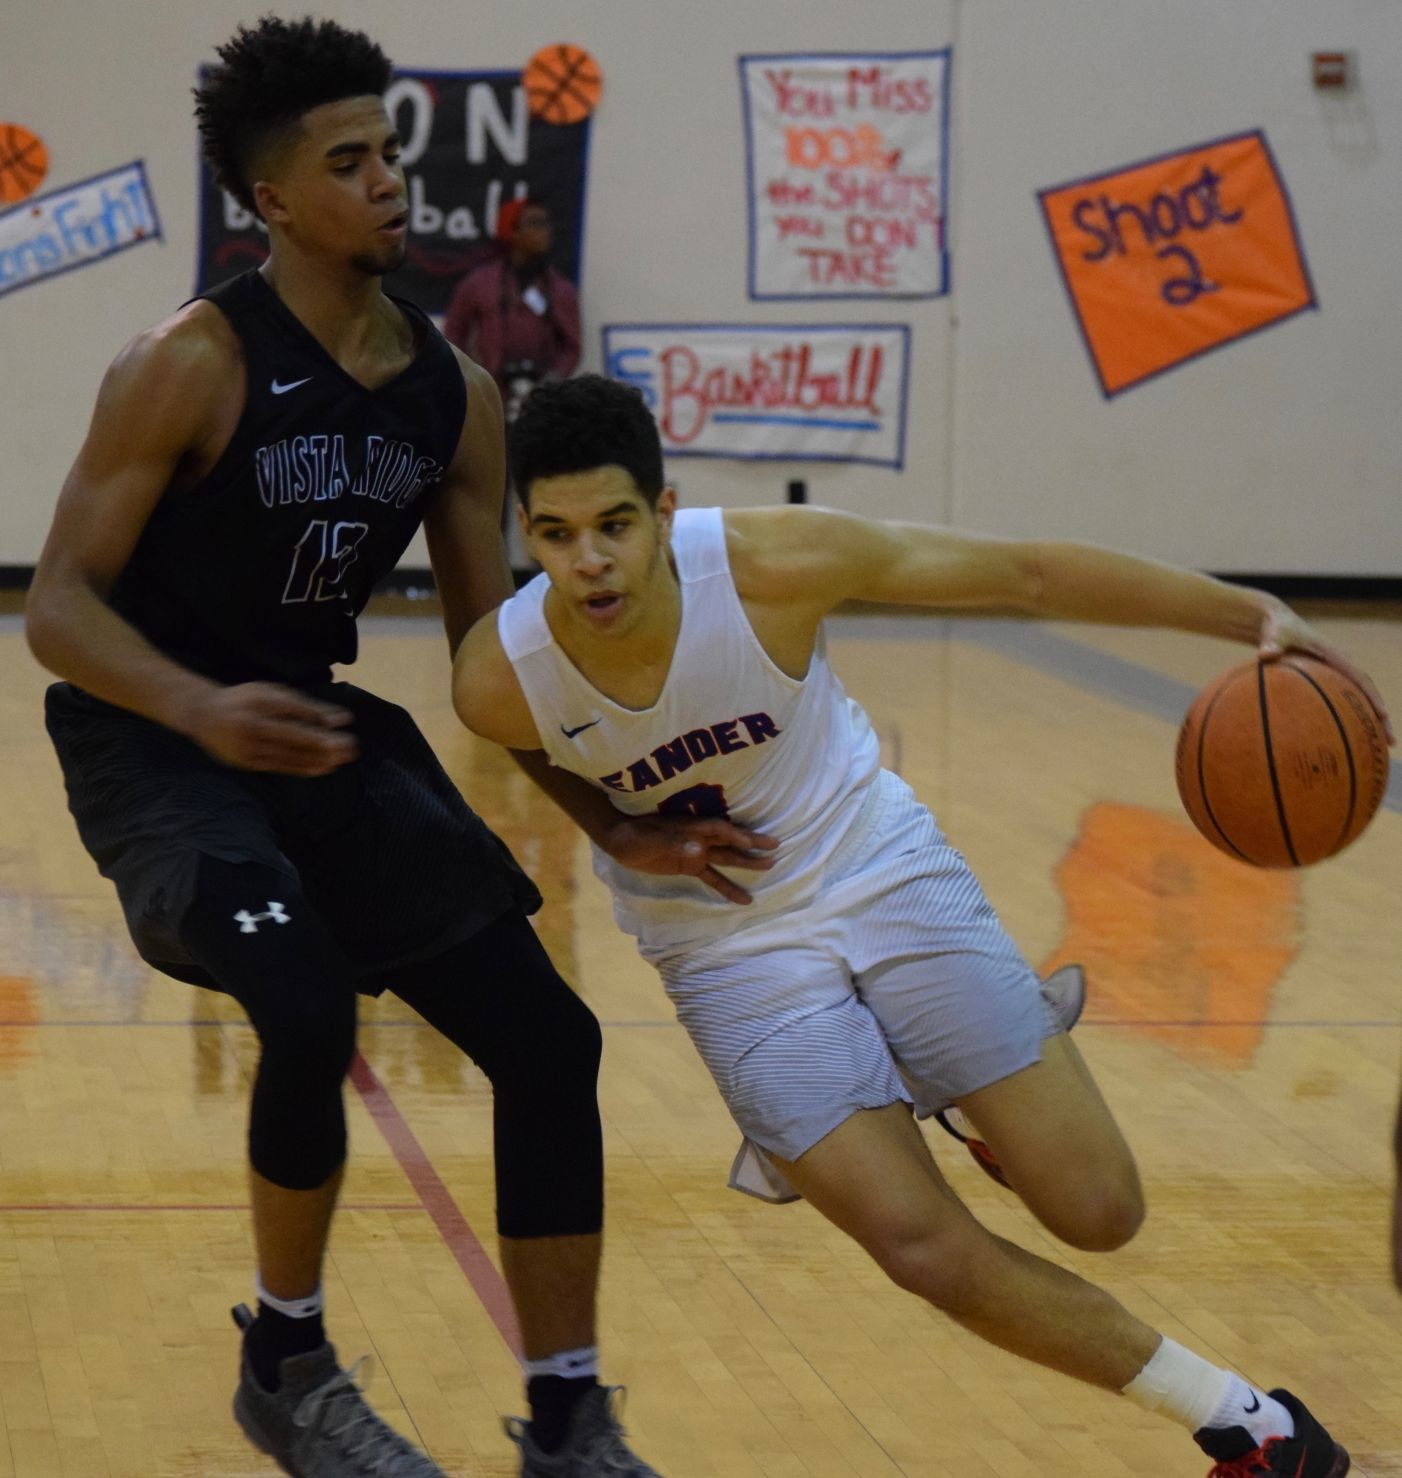 Kobe Thompson scored 17 points and Leander rallied form a fourth quarter deficit to beat Vista Ridge 65-61 in overtime Tuesday night.